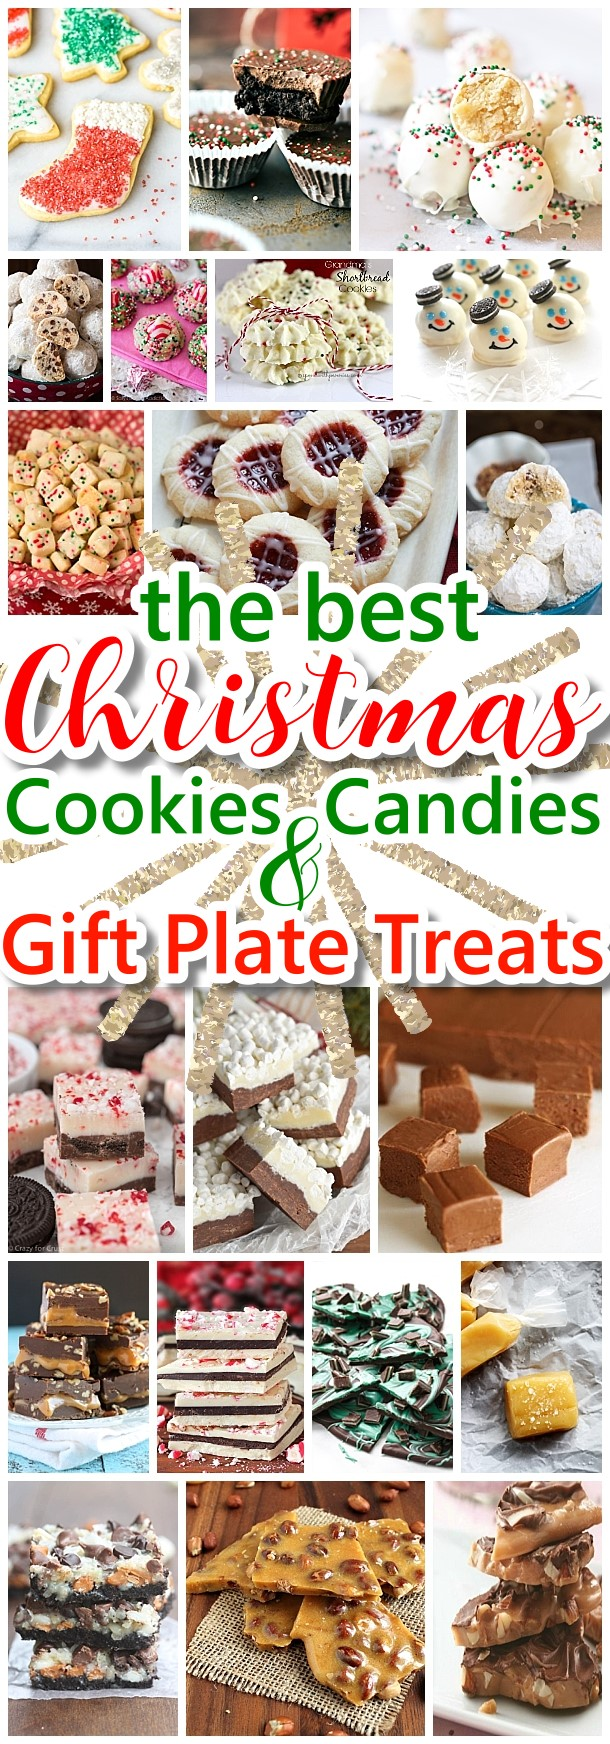 The BEST Christmas Cookies, Fudge, Candy, Barks and Brittles Recipes - Favorites for Holiday Treats Gift Plates and Goodies Bags! - Dreaming in DIY #chrstmascookies #christmascandy #christmastreats #holidaydesserts #holidayrecipes #christmascandies #holidaygiftplates